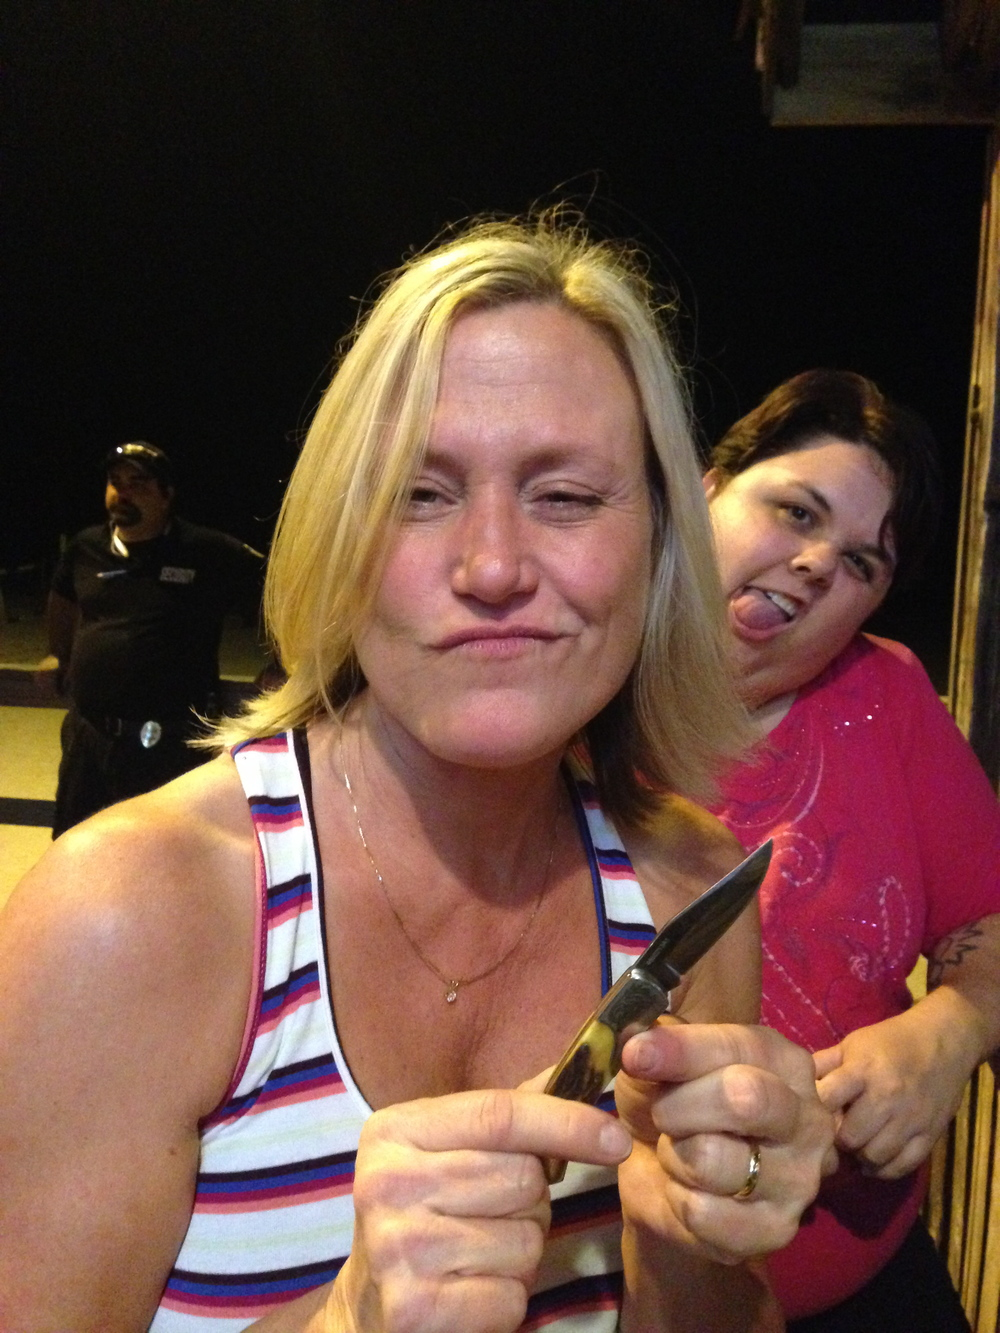 Trying for sexy face with Greg's knife, and I got photo bombed by Noelle, and apparently, a security guard. Drunk girl with a knife!